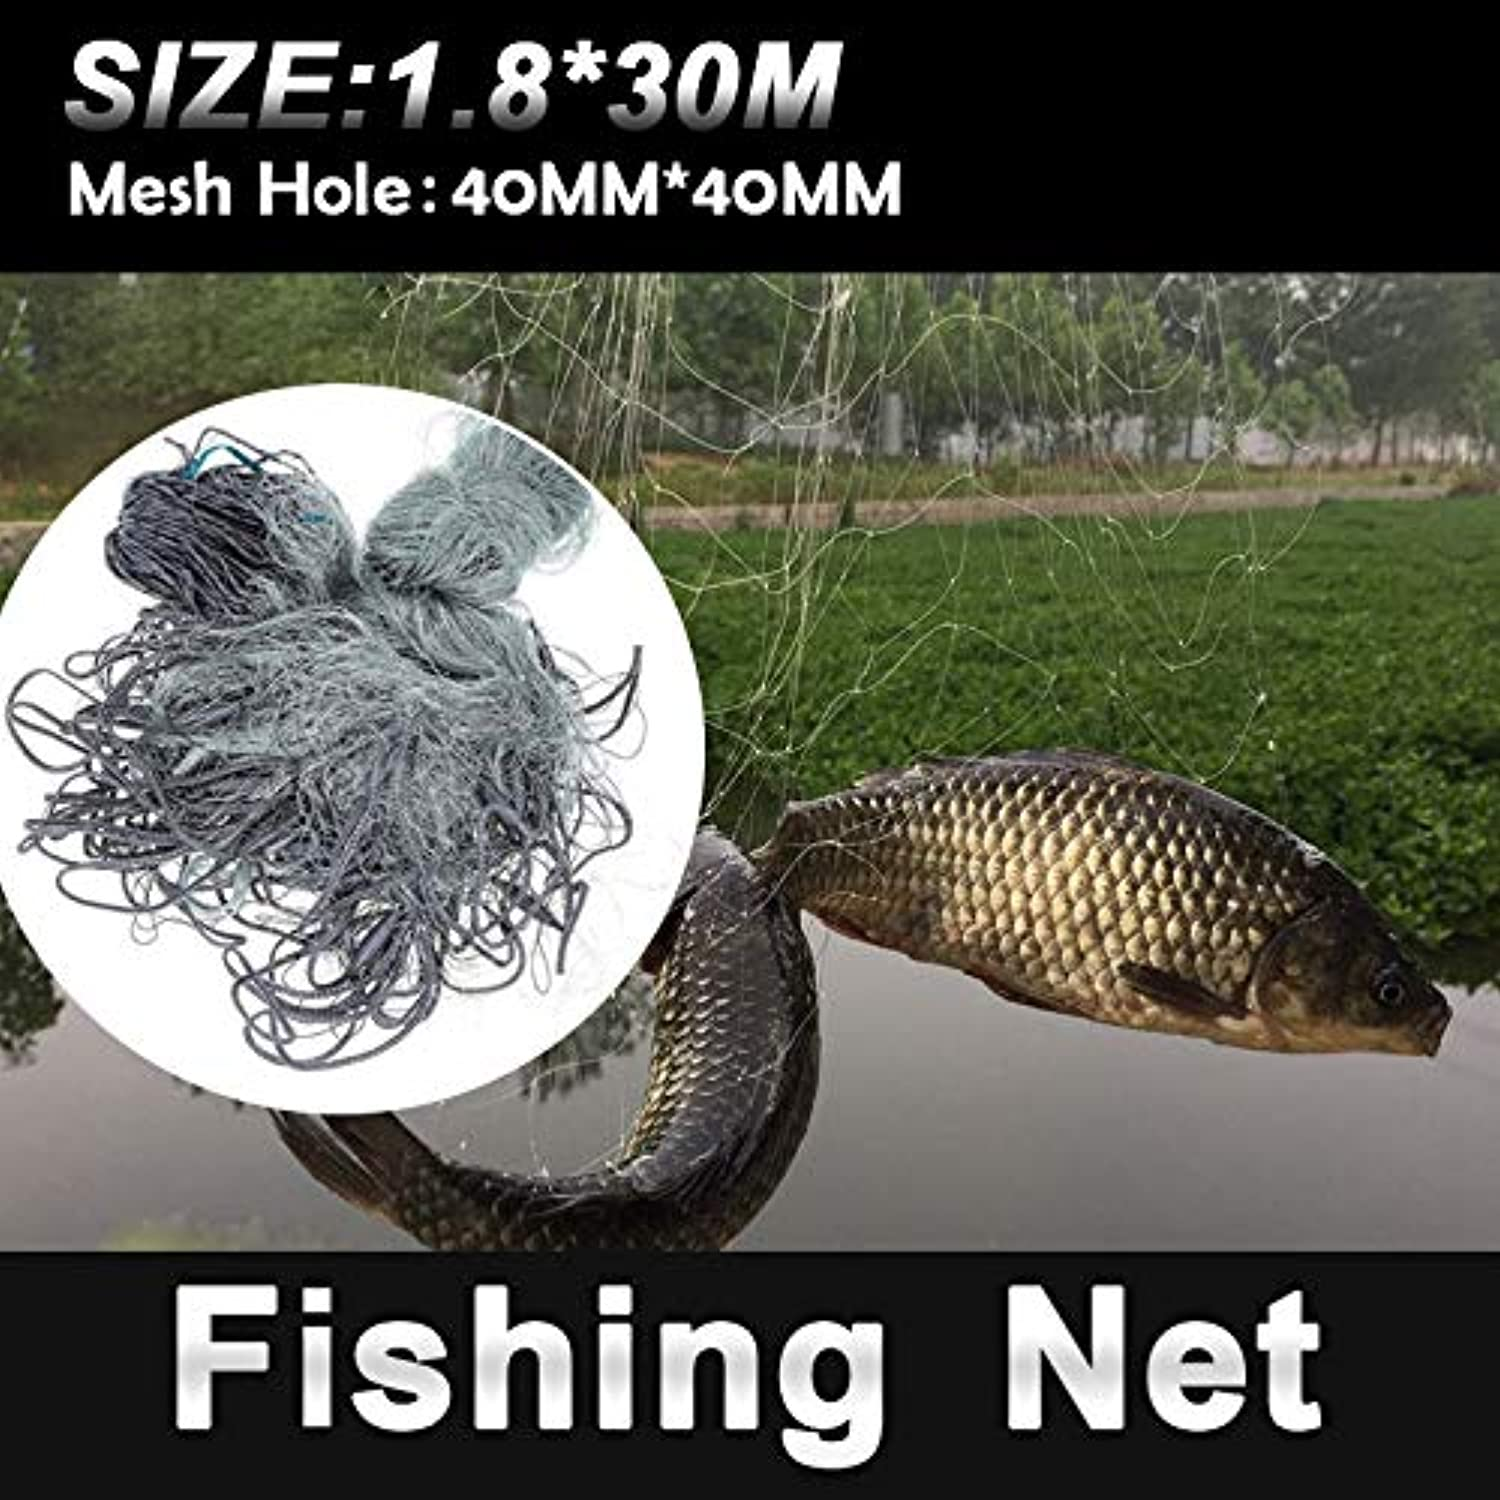 Multifilament Gill Net Portable 3 Floors Folding Fishnet Fine Fish Catch Fishing Net USA Cast Nets Water Hand Throw Fly Fishing